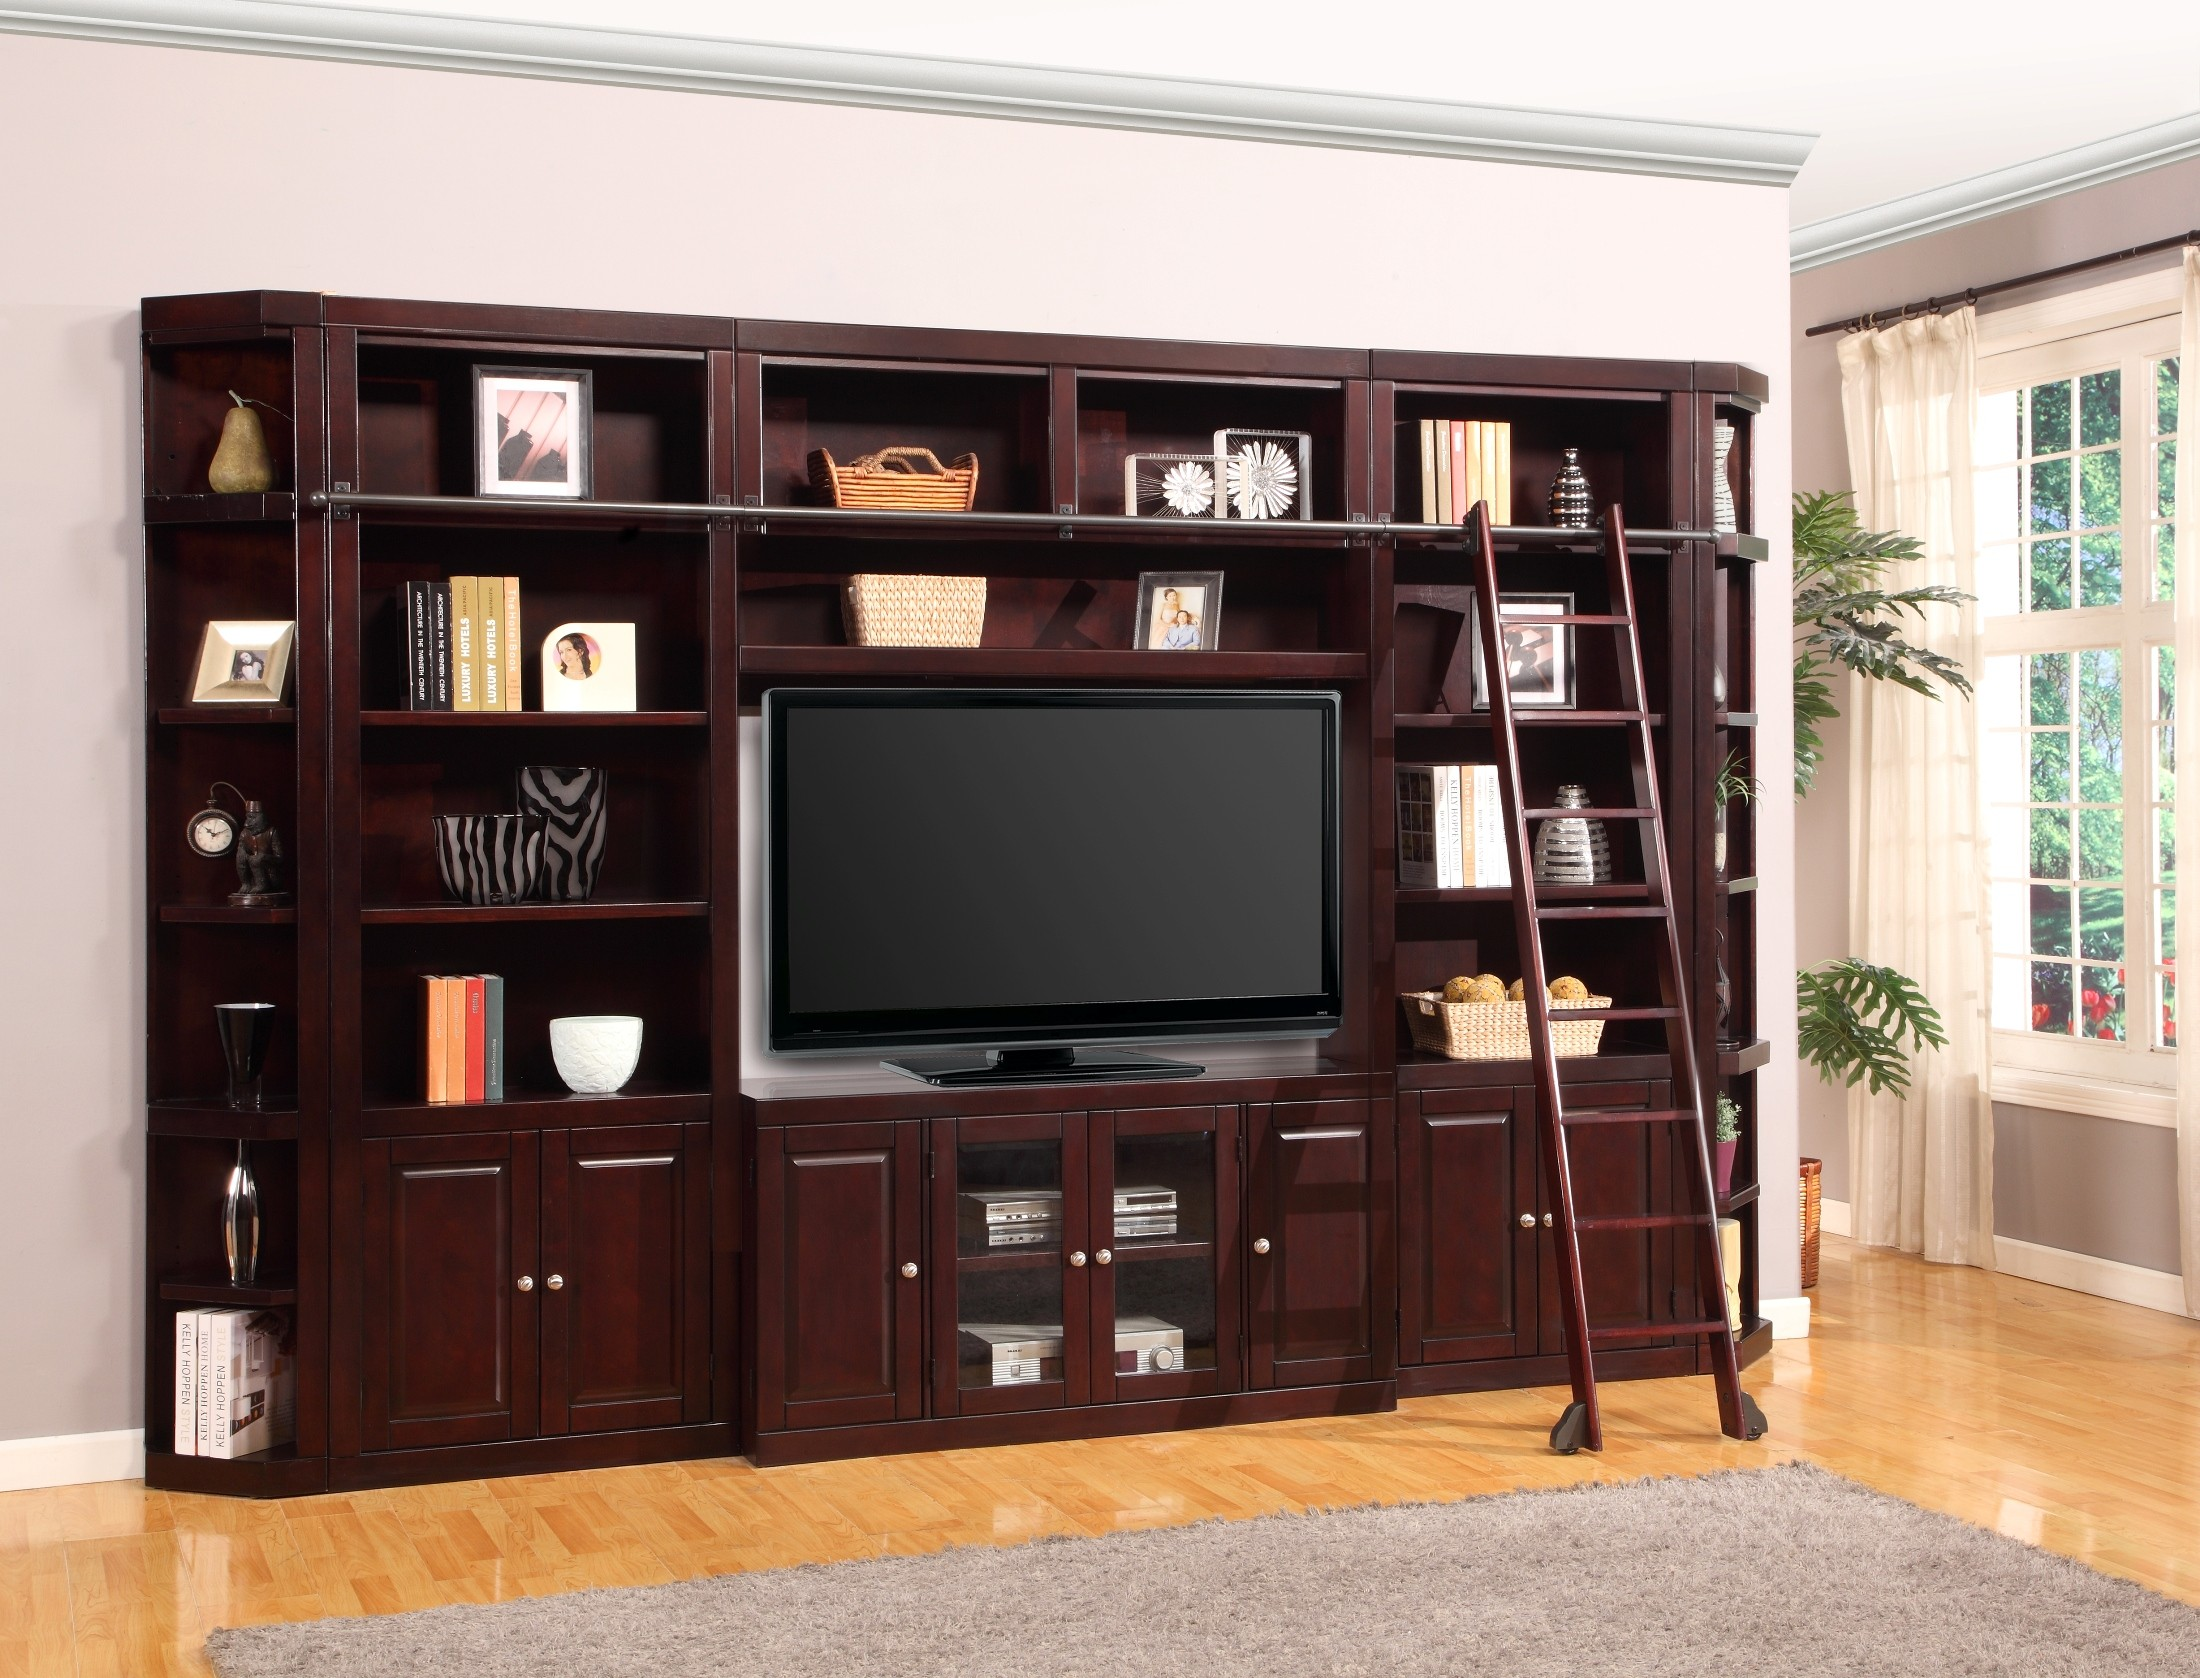 bookshelf all reader outstanding projects the family handyman view center bookcase workshop entertainment